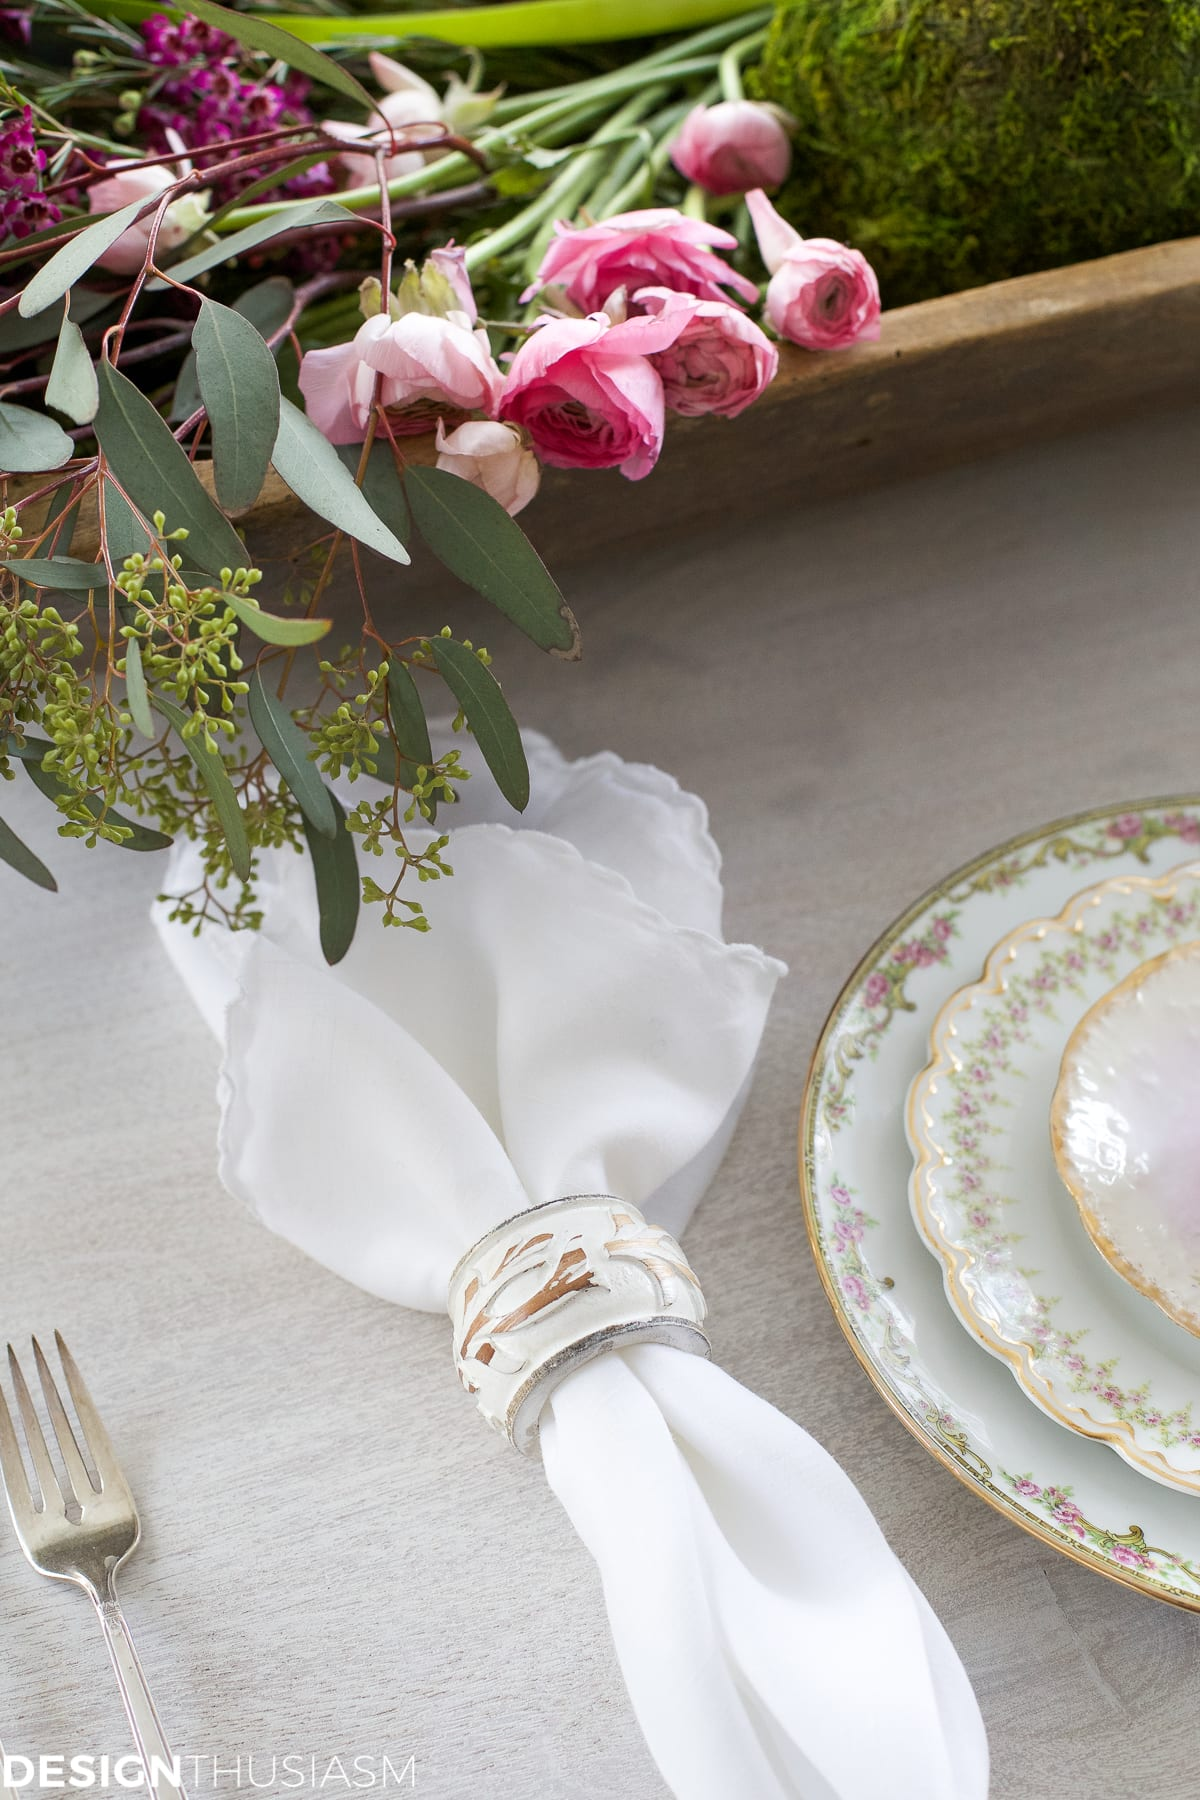 Winter Table: Vintage Dishes with a Dough Bowl Centerpiece | Designthusiasm.com